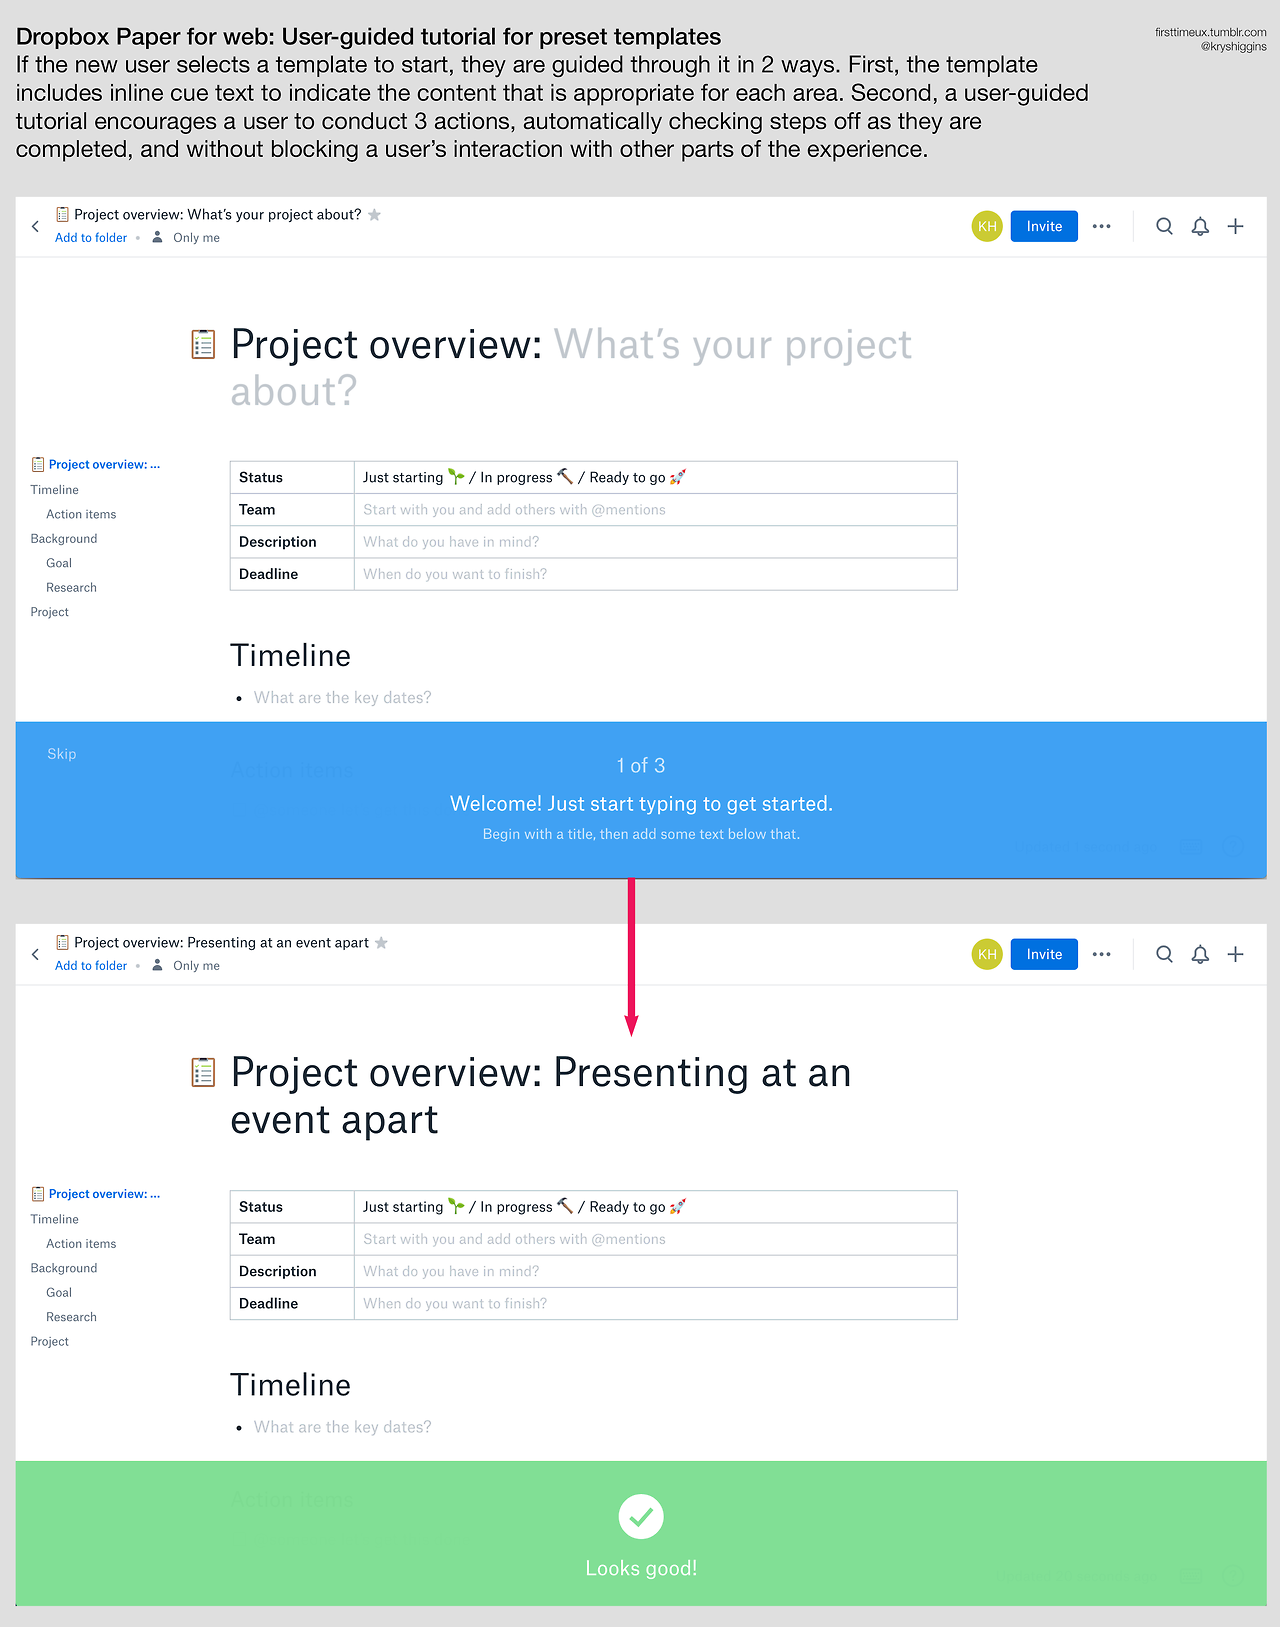 Dropbox Paper - first time introduction - screens 03